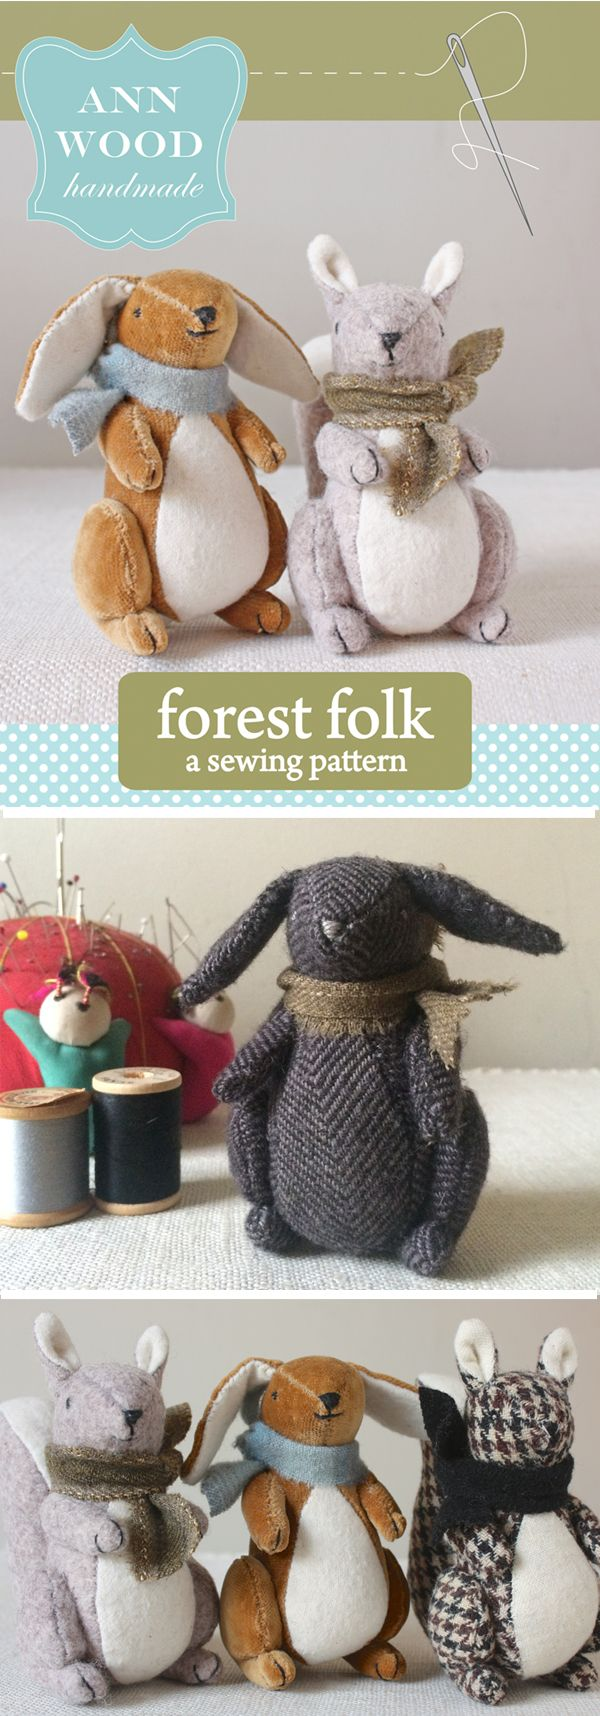 The forest folk pattern is in the shop. Little creatures that fit in the palm of your hand  | Ann Wood